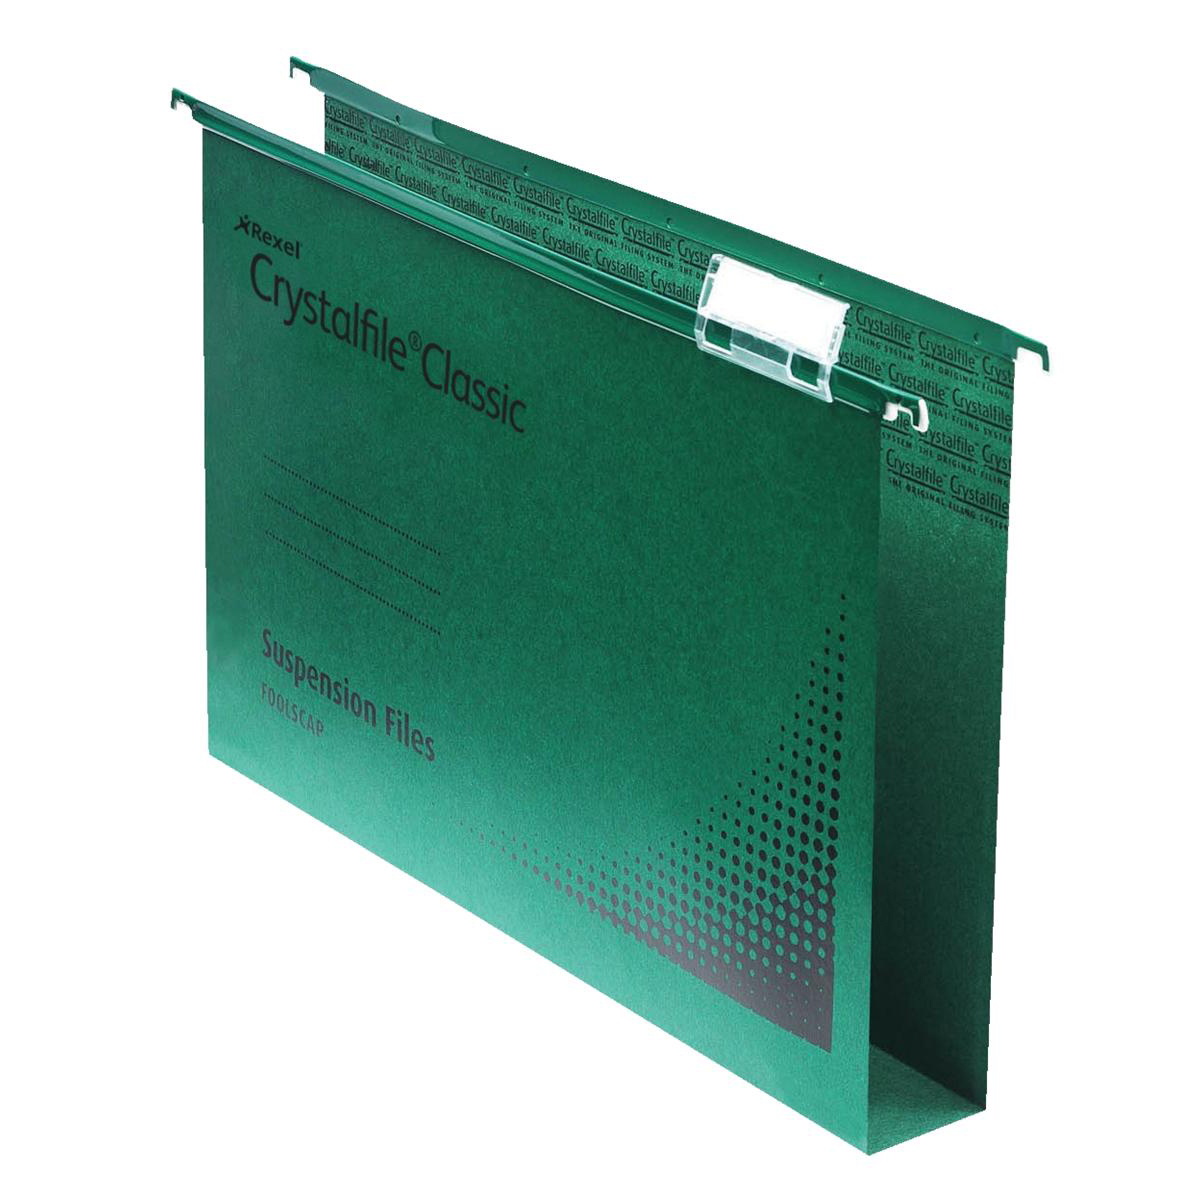 Suspension File Rexel Crystalfile Classic Suspension File Manilla 30mm Wide-base230gsm Foolscap Green Ref 78041 Pack 50